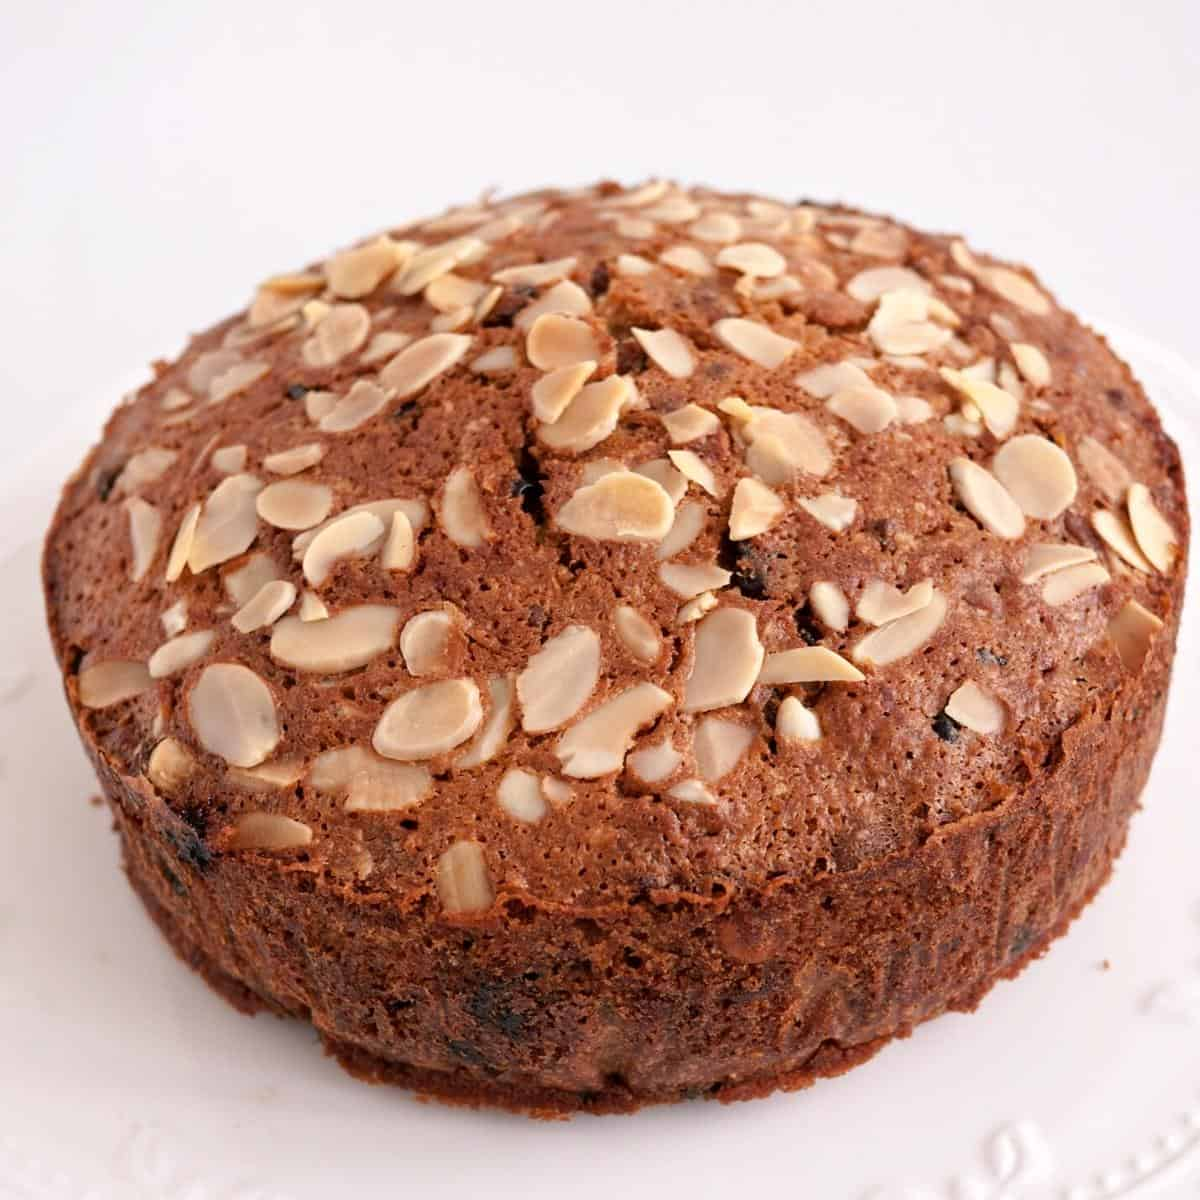 A fruit cake topped with almonds.